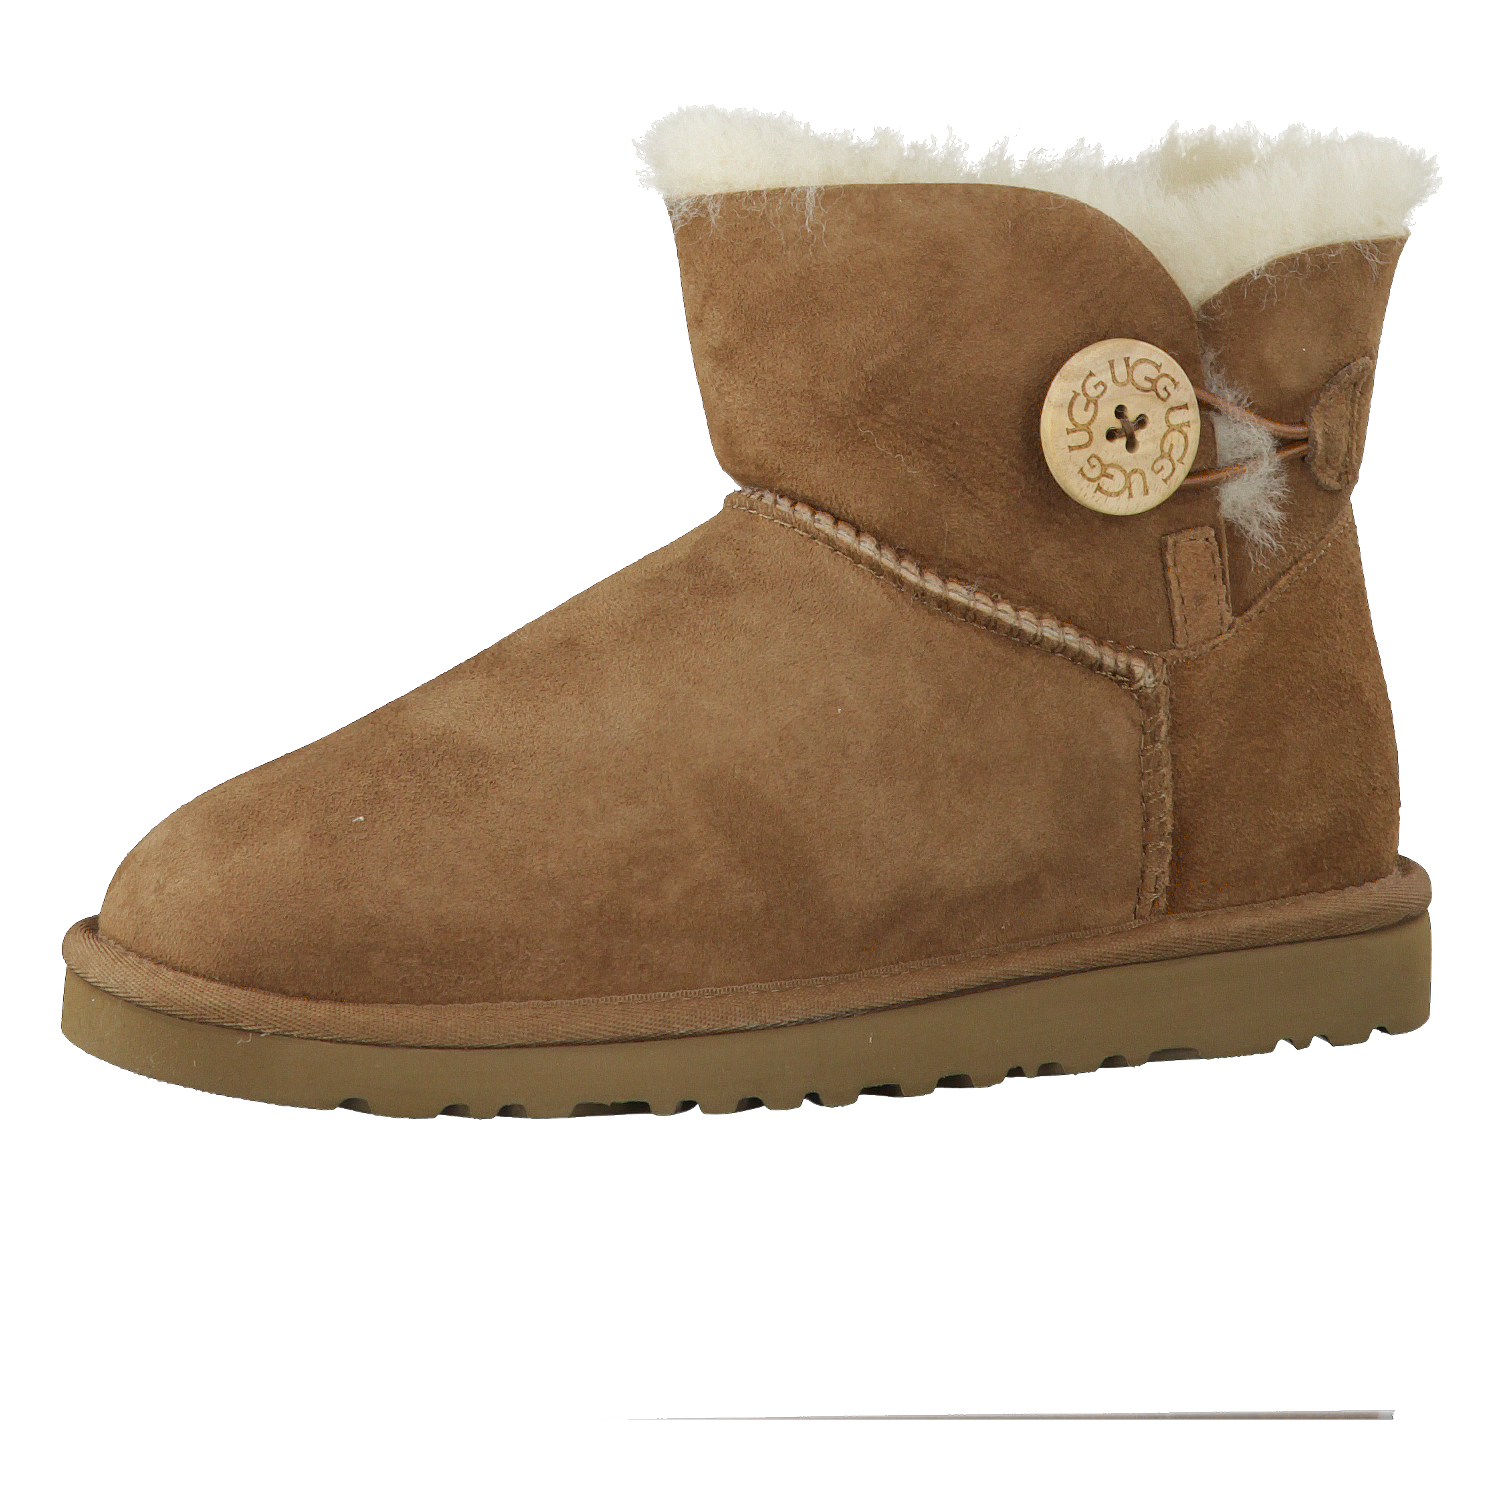 UGG Damen Mini Boots Bailey Button 3352-12S: Chestnut: 41